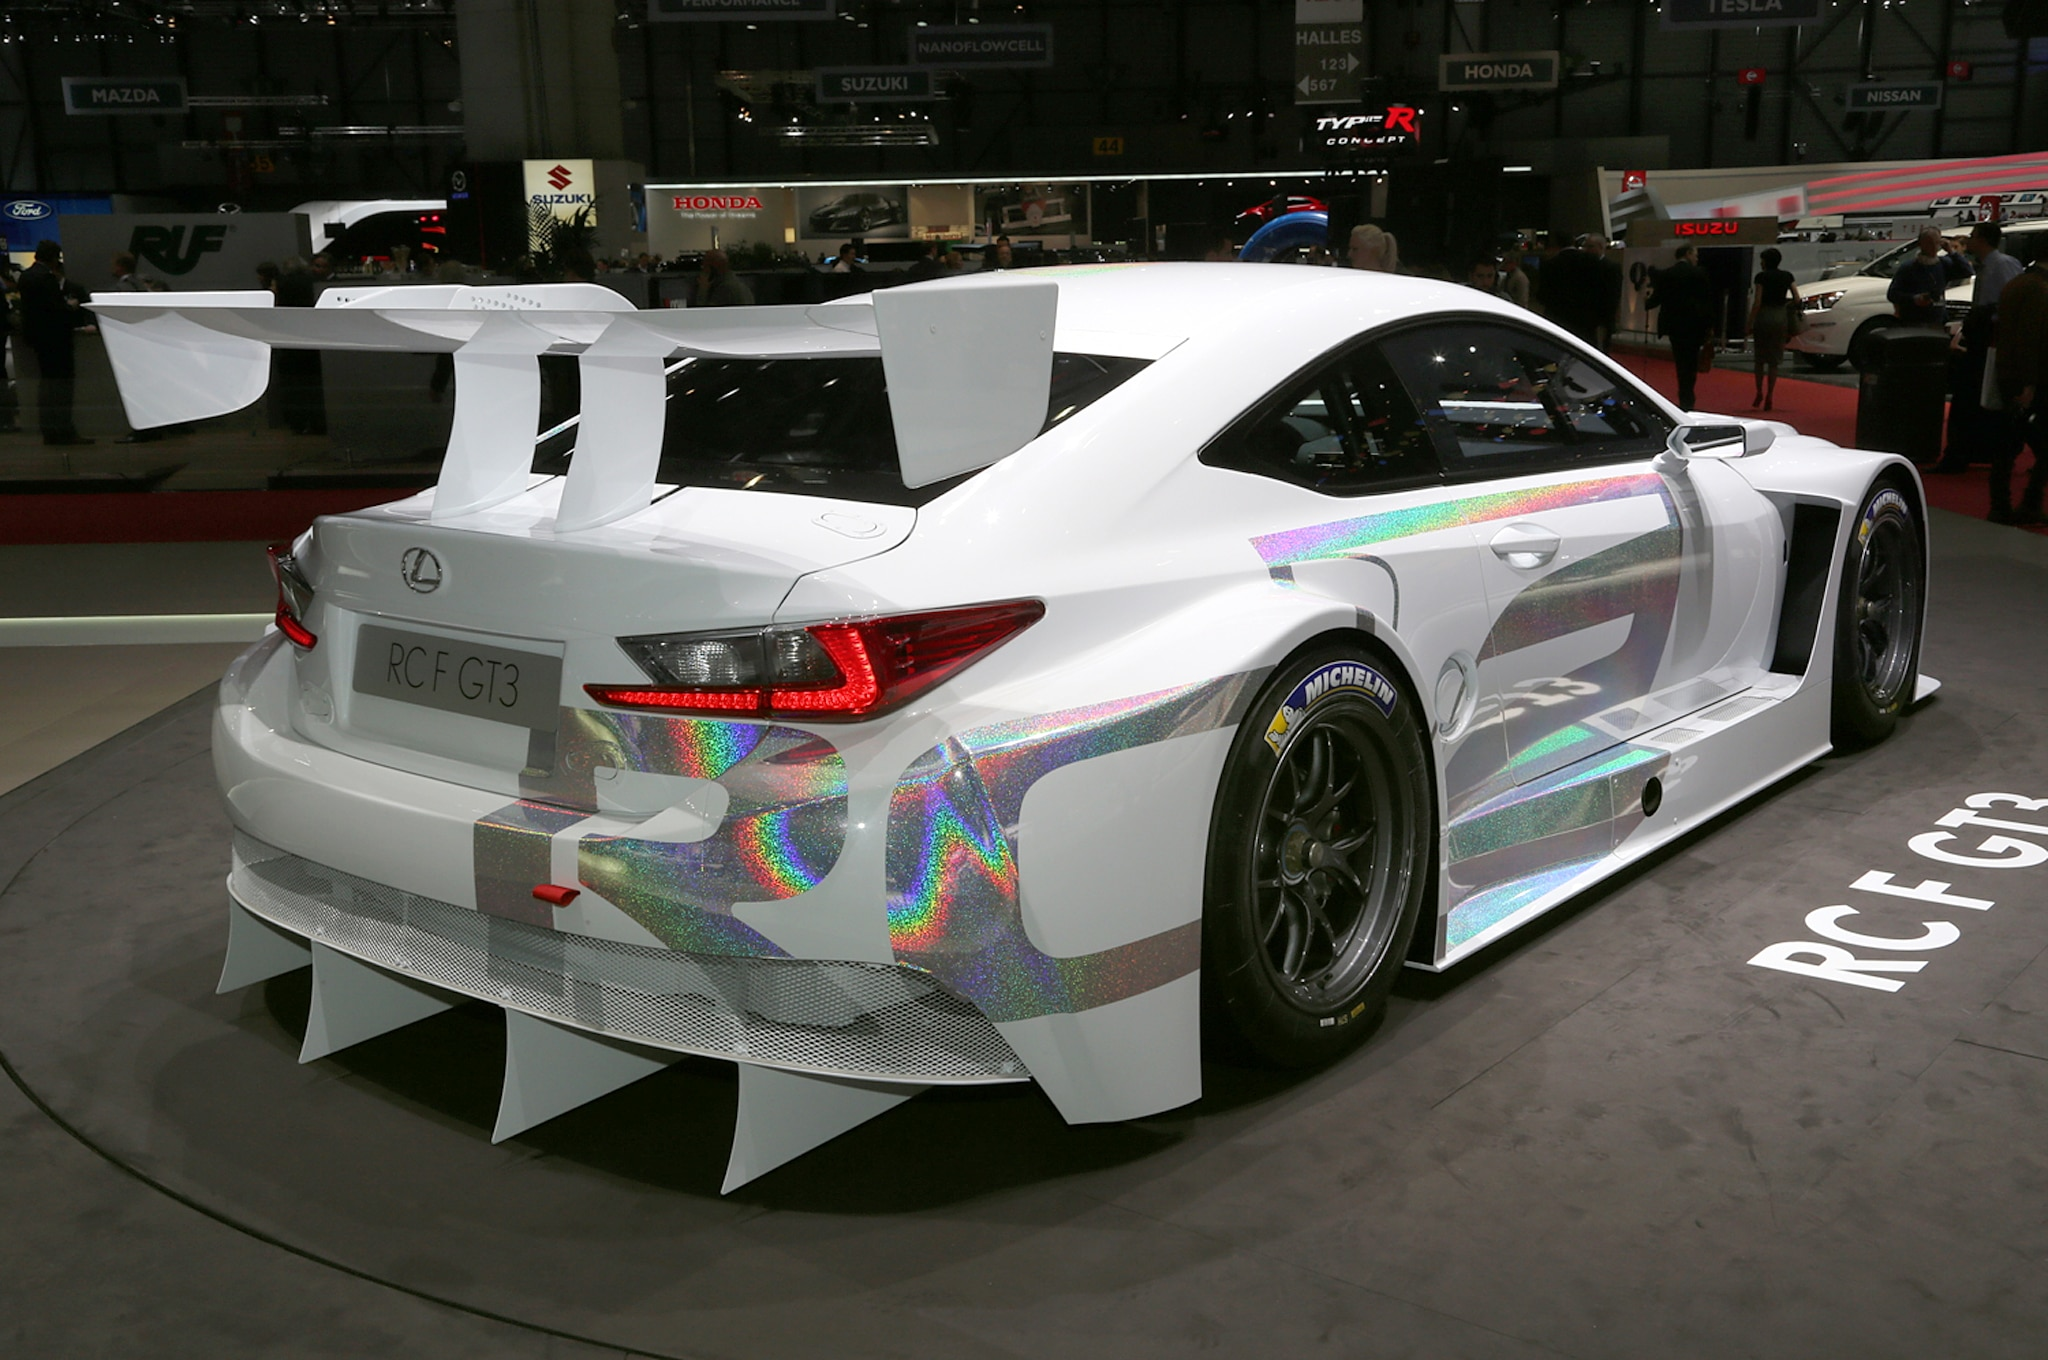 Used Lexus Gs 350 >> Lexus Set to Go Racing in 2016 with the RC F GT3